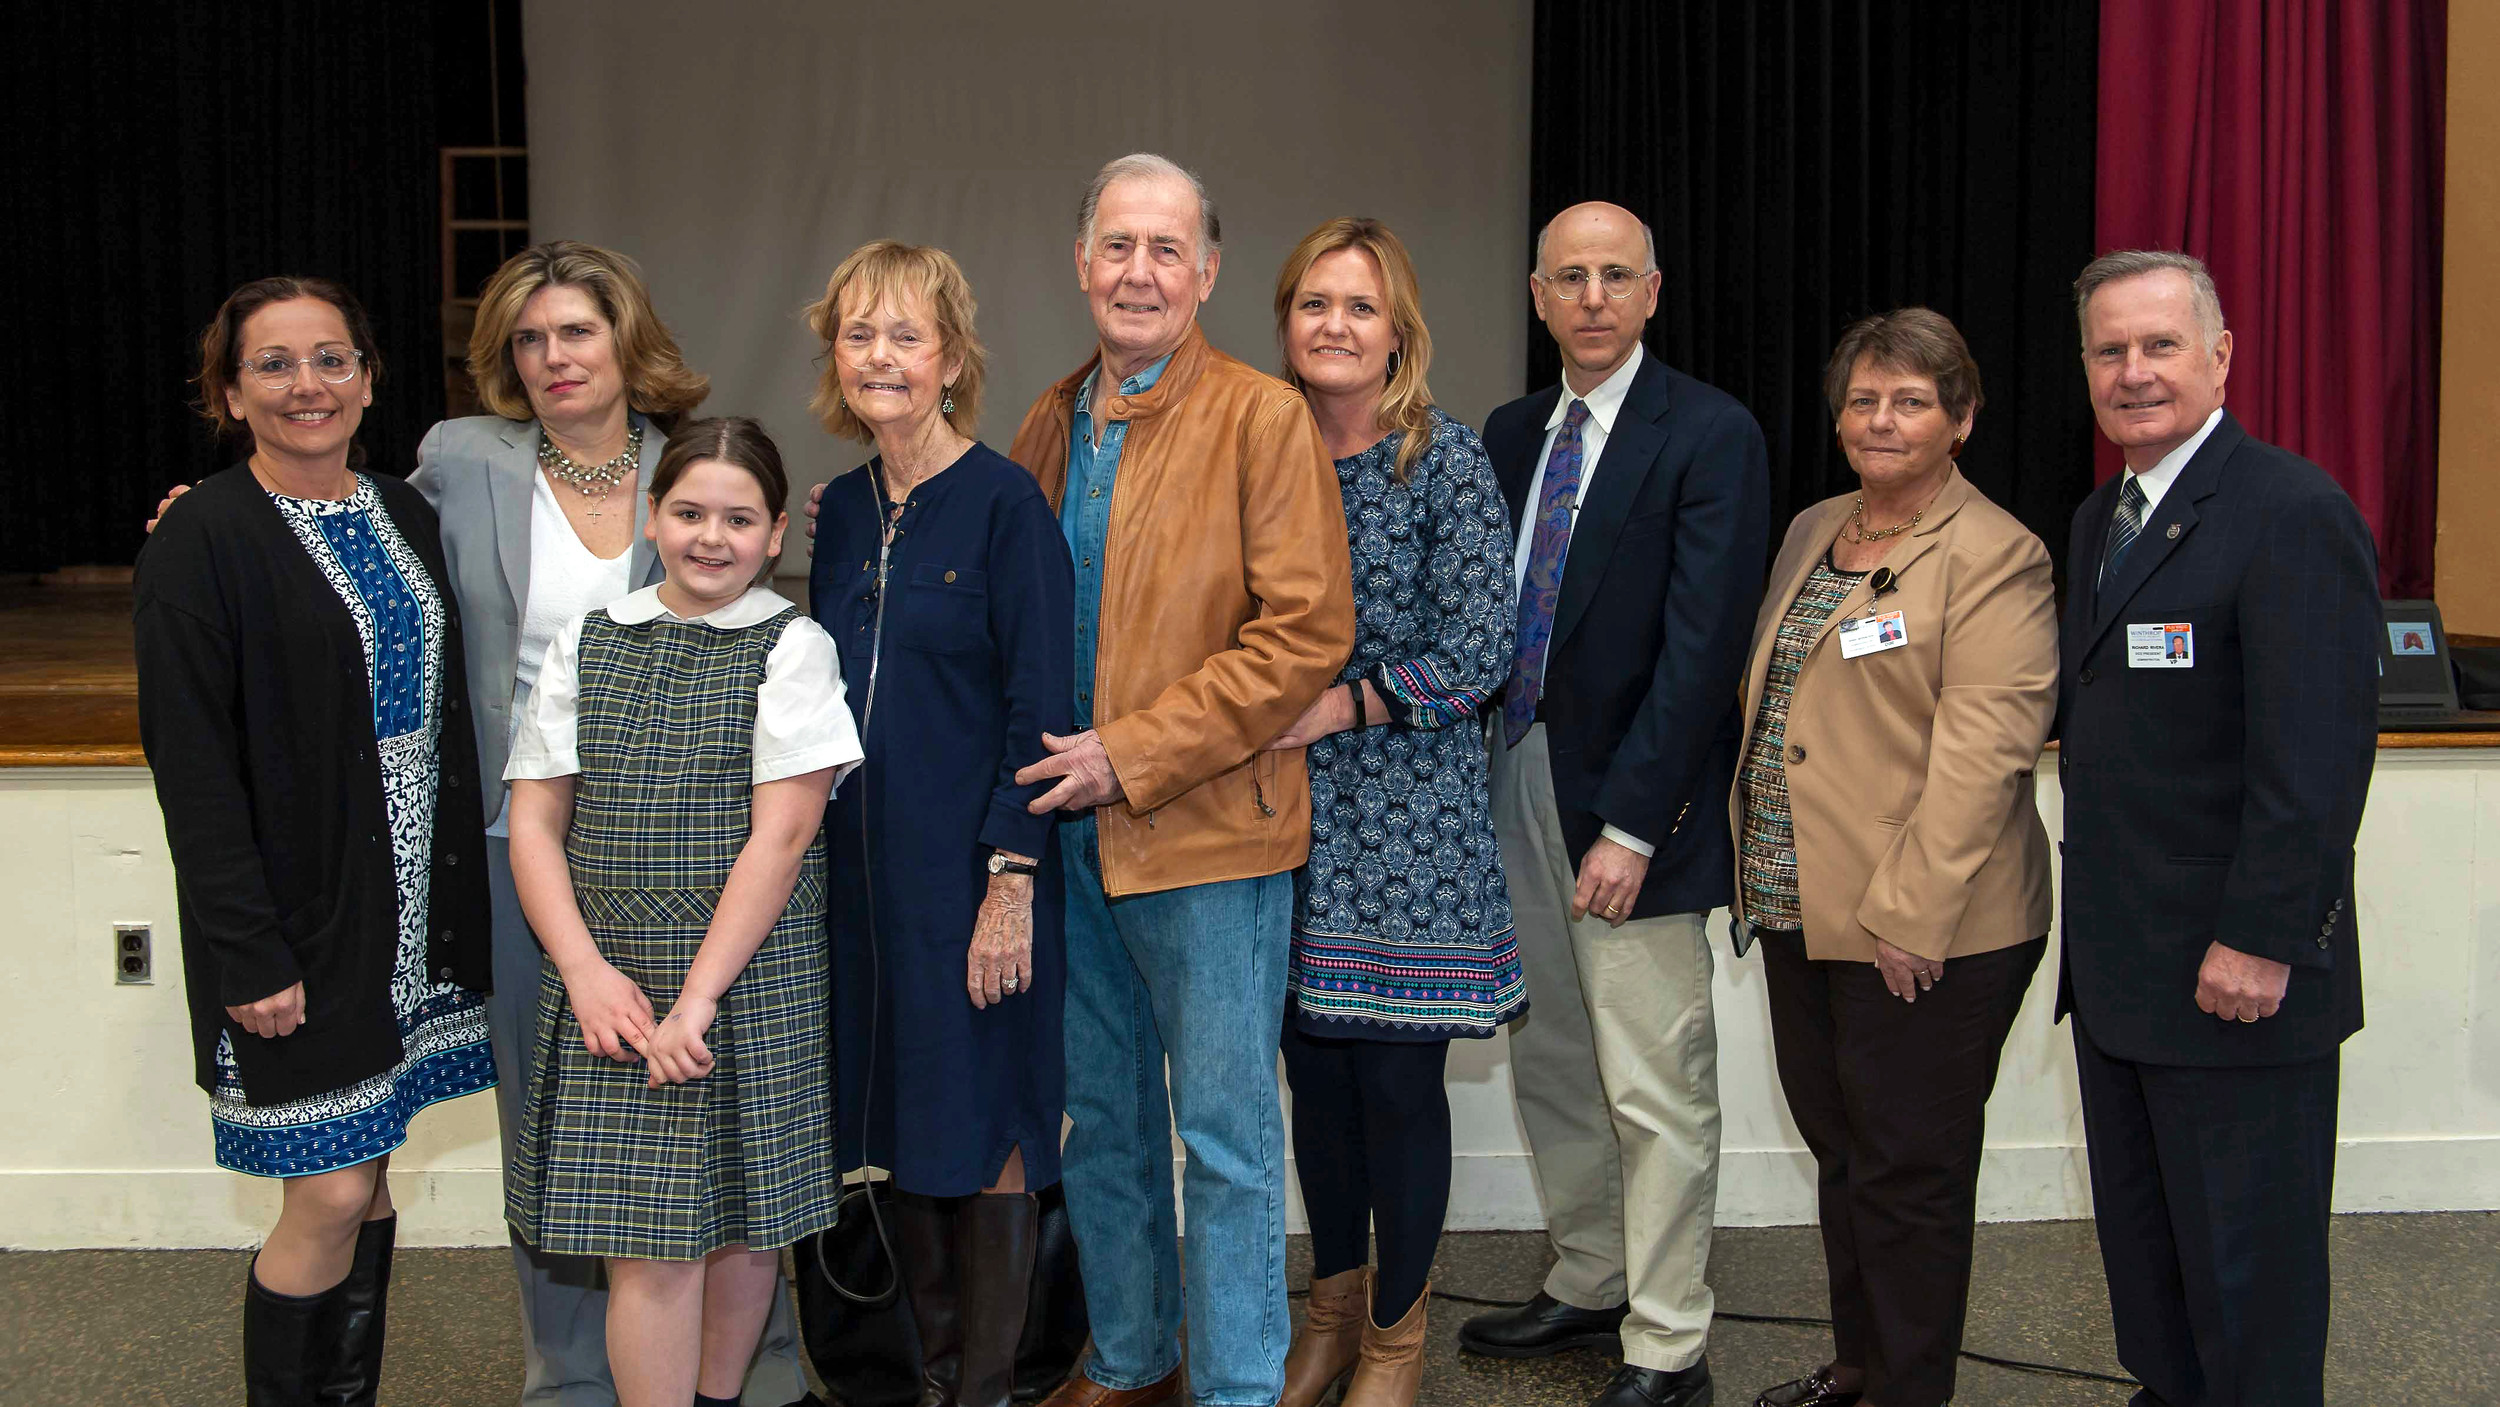 Kiera Harding, a fourth-grader at St. Thomas the Apostle School, spurred her schoolmates to raise money for medical research. From left were Principal Valerie Gigante, Diane Smith, director of Major Gifts at Winthrop; Harding with her grandparents, Mary and Ray Rockensies and her mom, Maryann; speaker Dr. Steve Salzman, Mara Bernstein, administrative director of Pulmonary Outpatient Services at Winthrop, and Richard Rivera, Winthrop administration vice president.